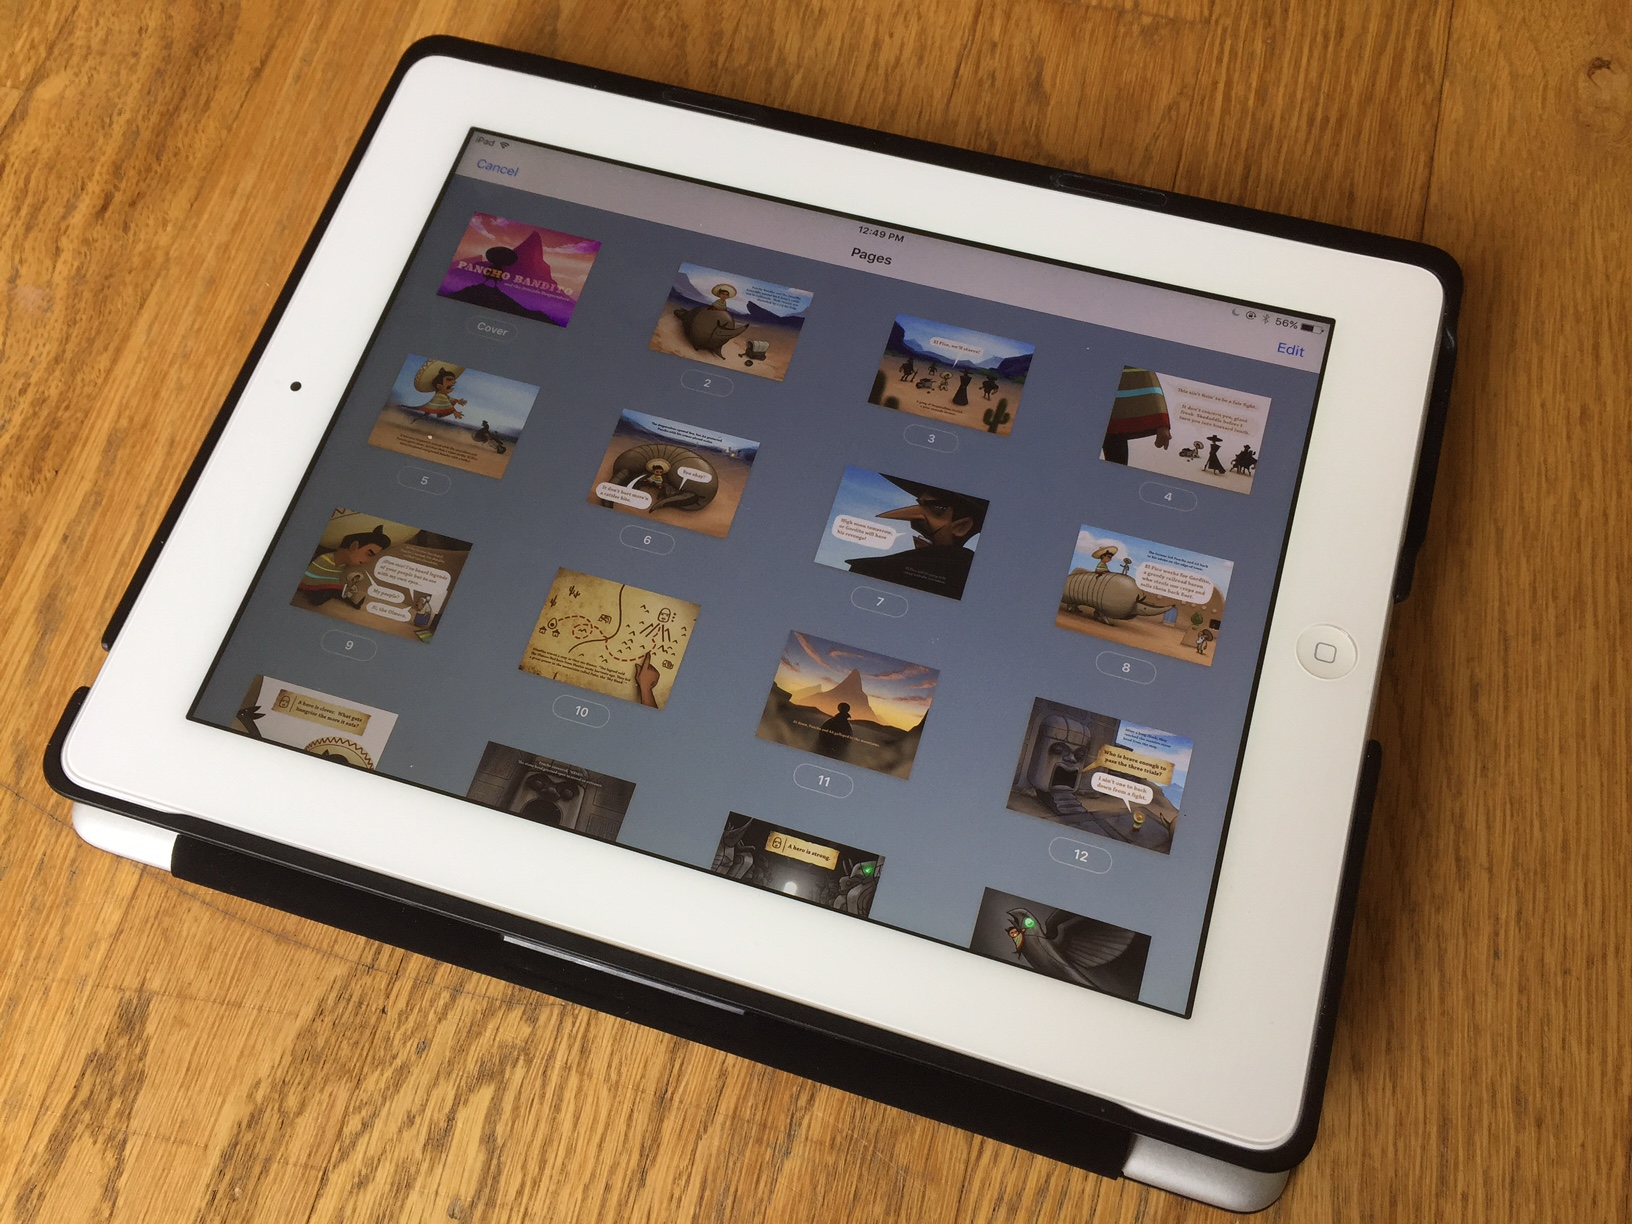 We used the app 'Book Creator' to format the iBooks version of Pancho 2.